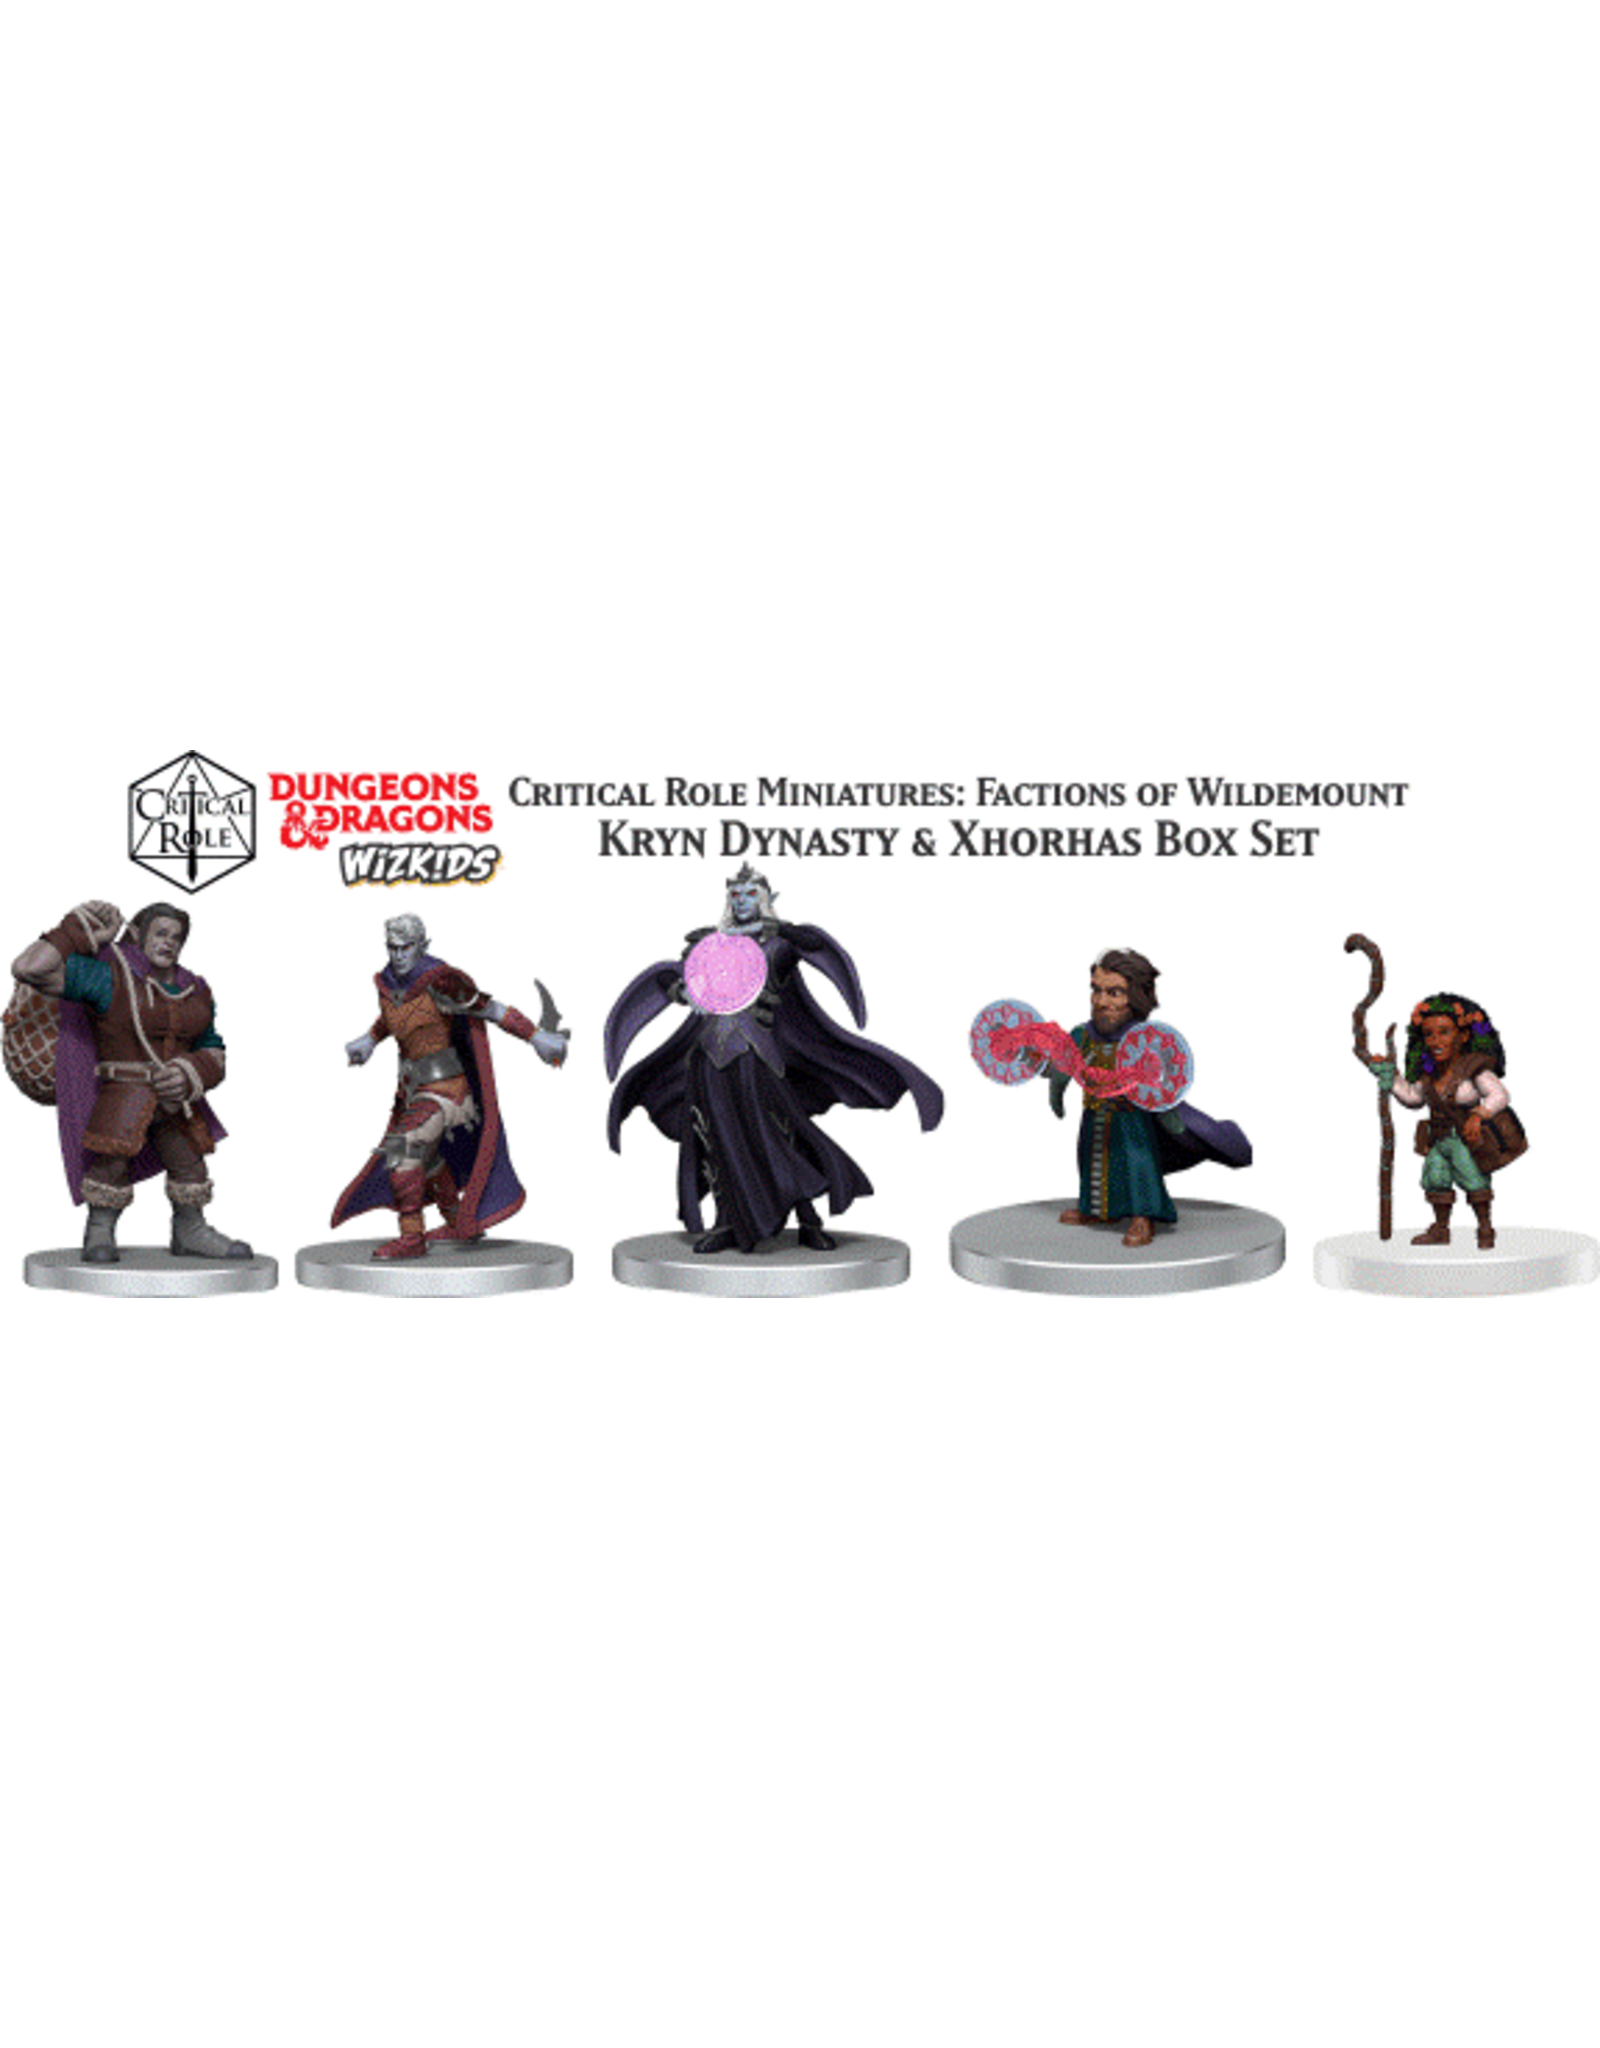 WizKids Dungeons & Dragons Critical Role Miniatures Factions of Wildemount Kryn Dynasty